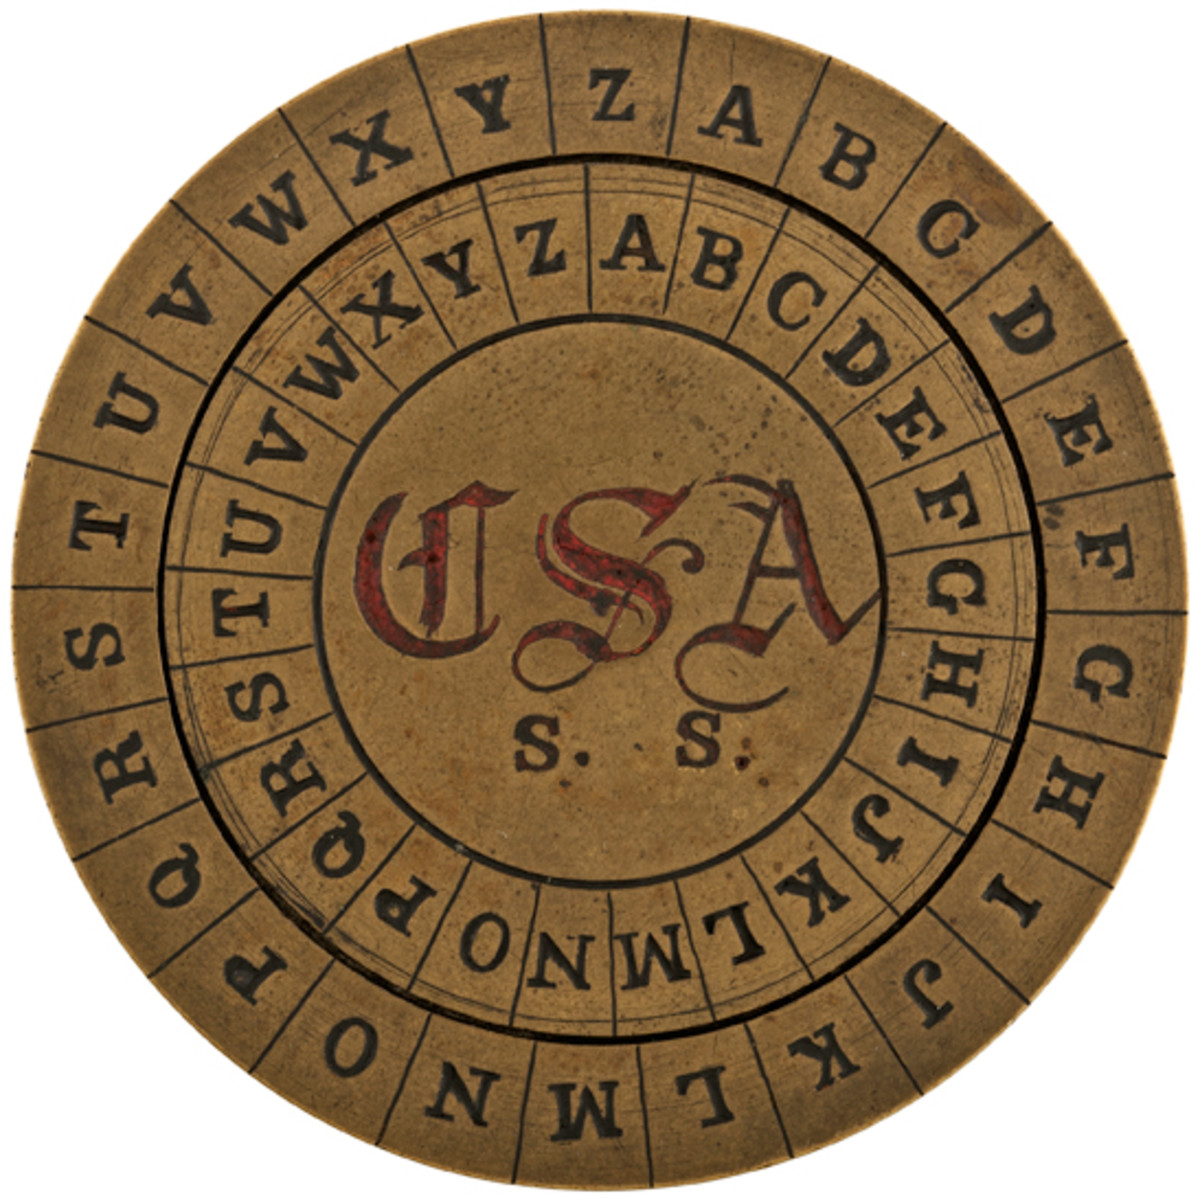 Exceptionally Rare Confederate Cipher Disc - $10,000/15,000